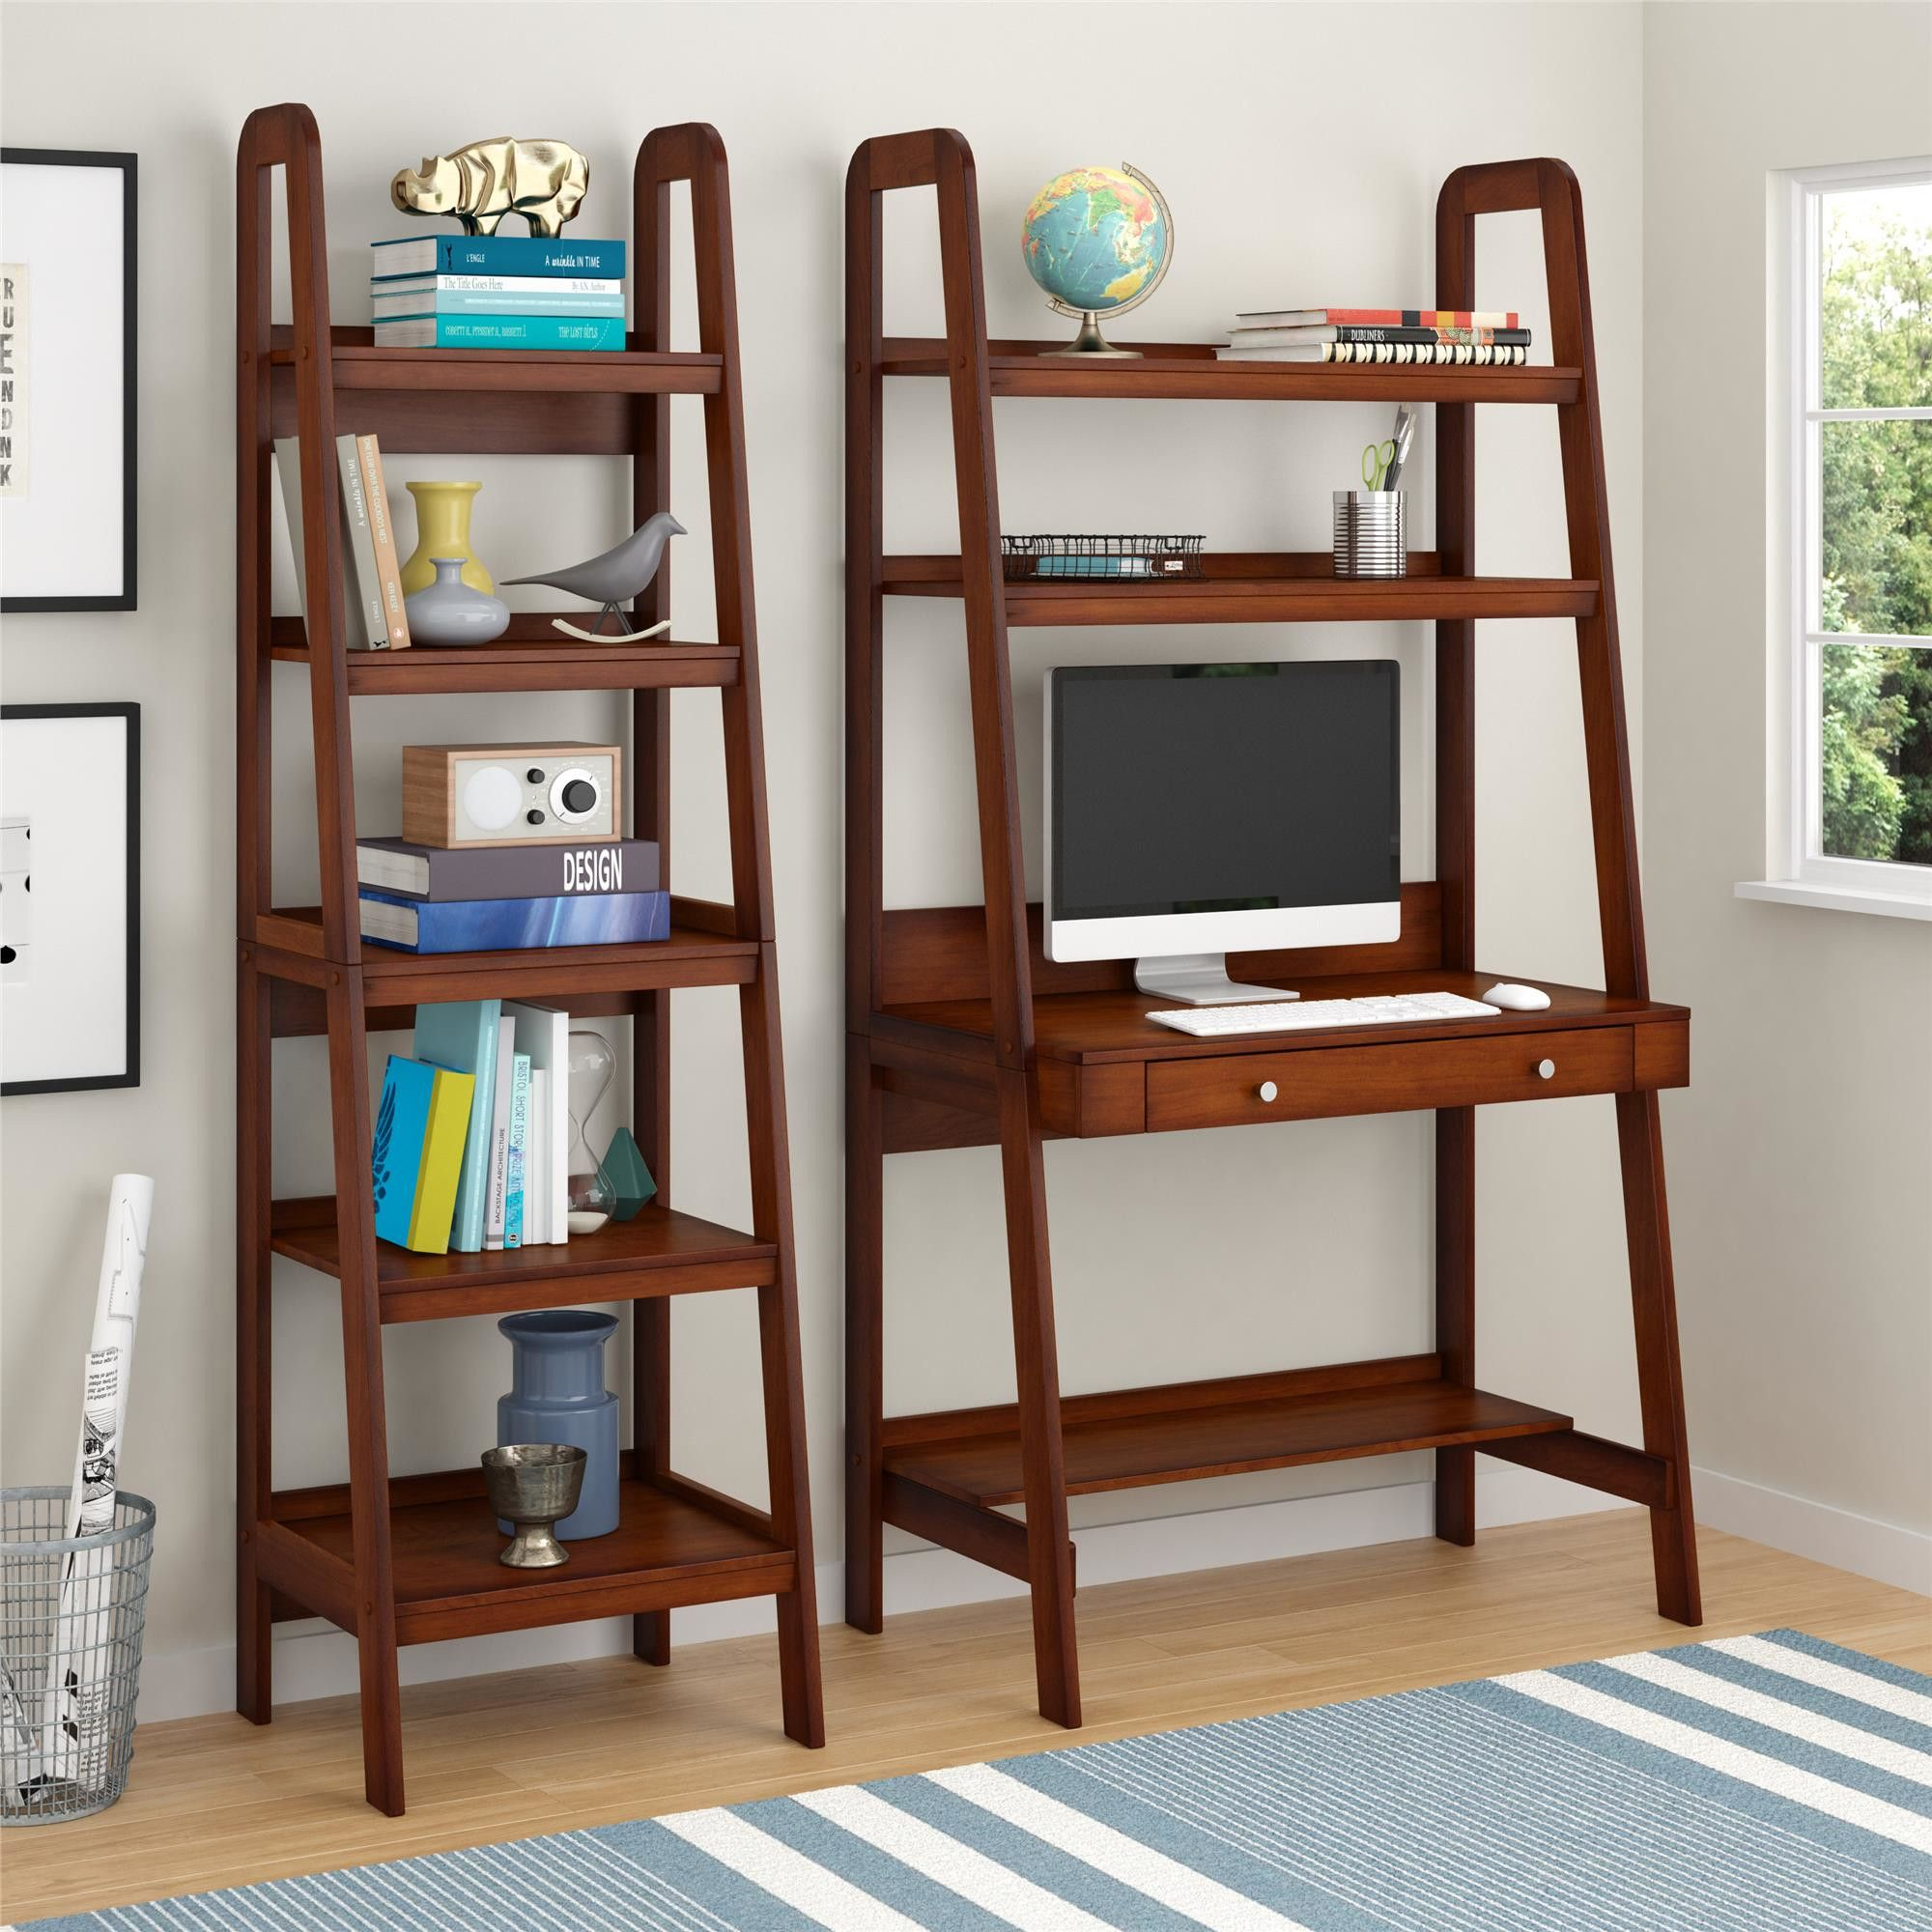 Altra Platform Leaning Desk Bookshelf Desk Home Home Decor